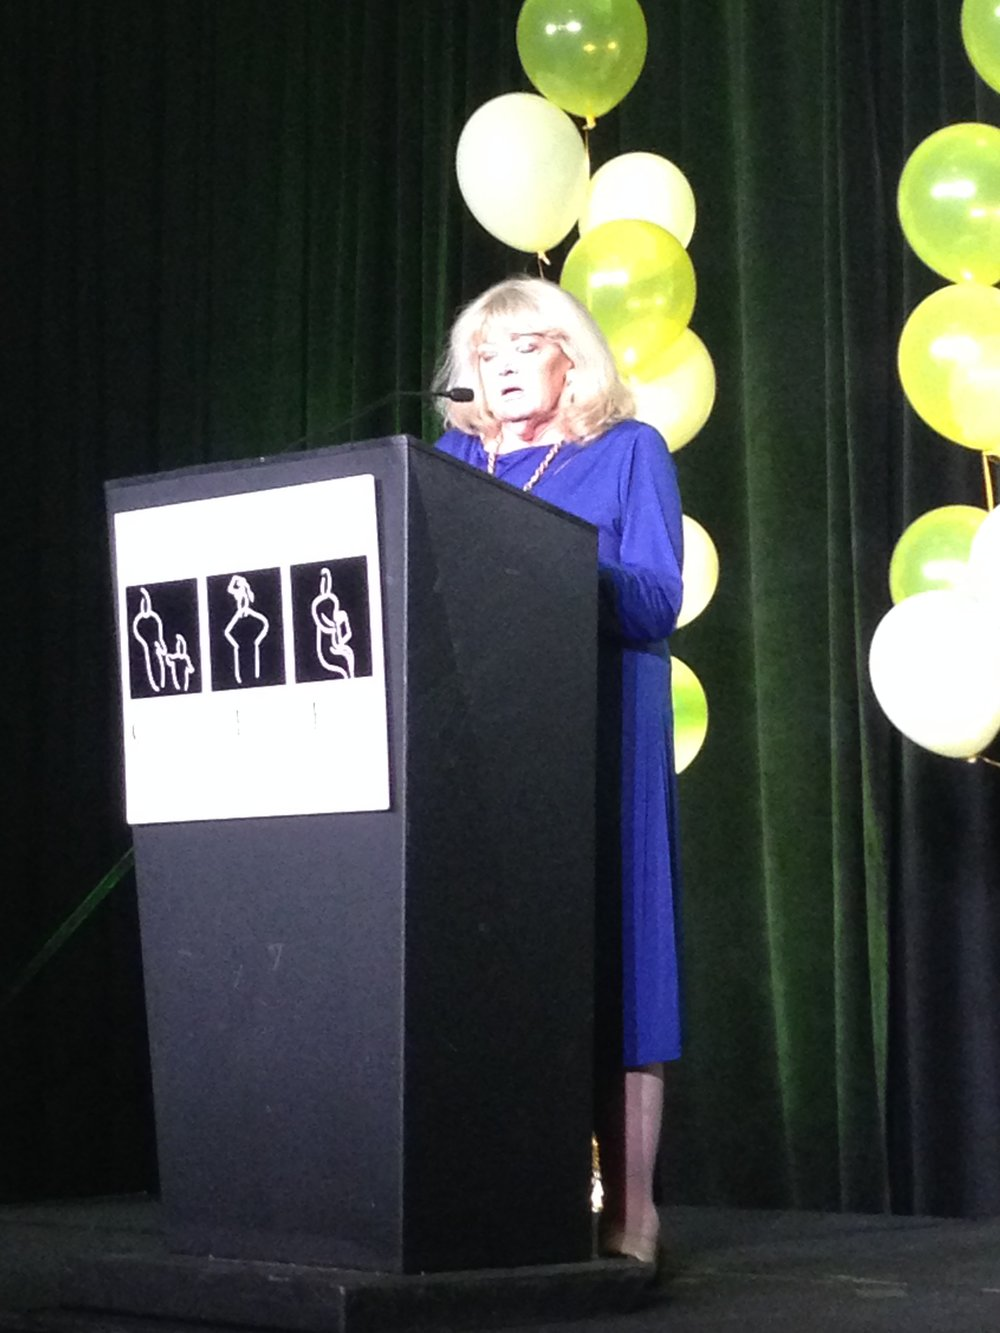 Cyndy presenting an award during the 2015 Committee for Education Funding (CEF) gala